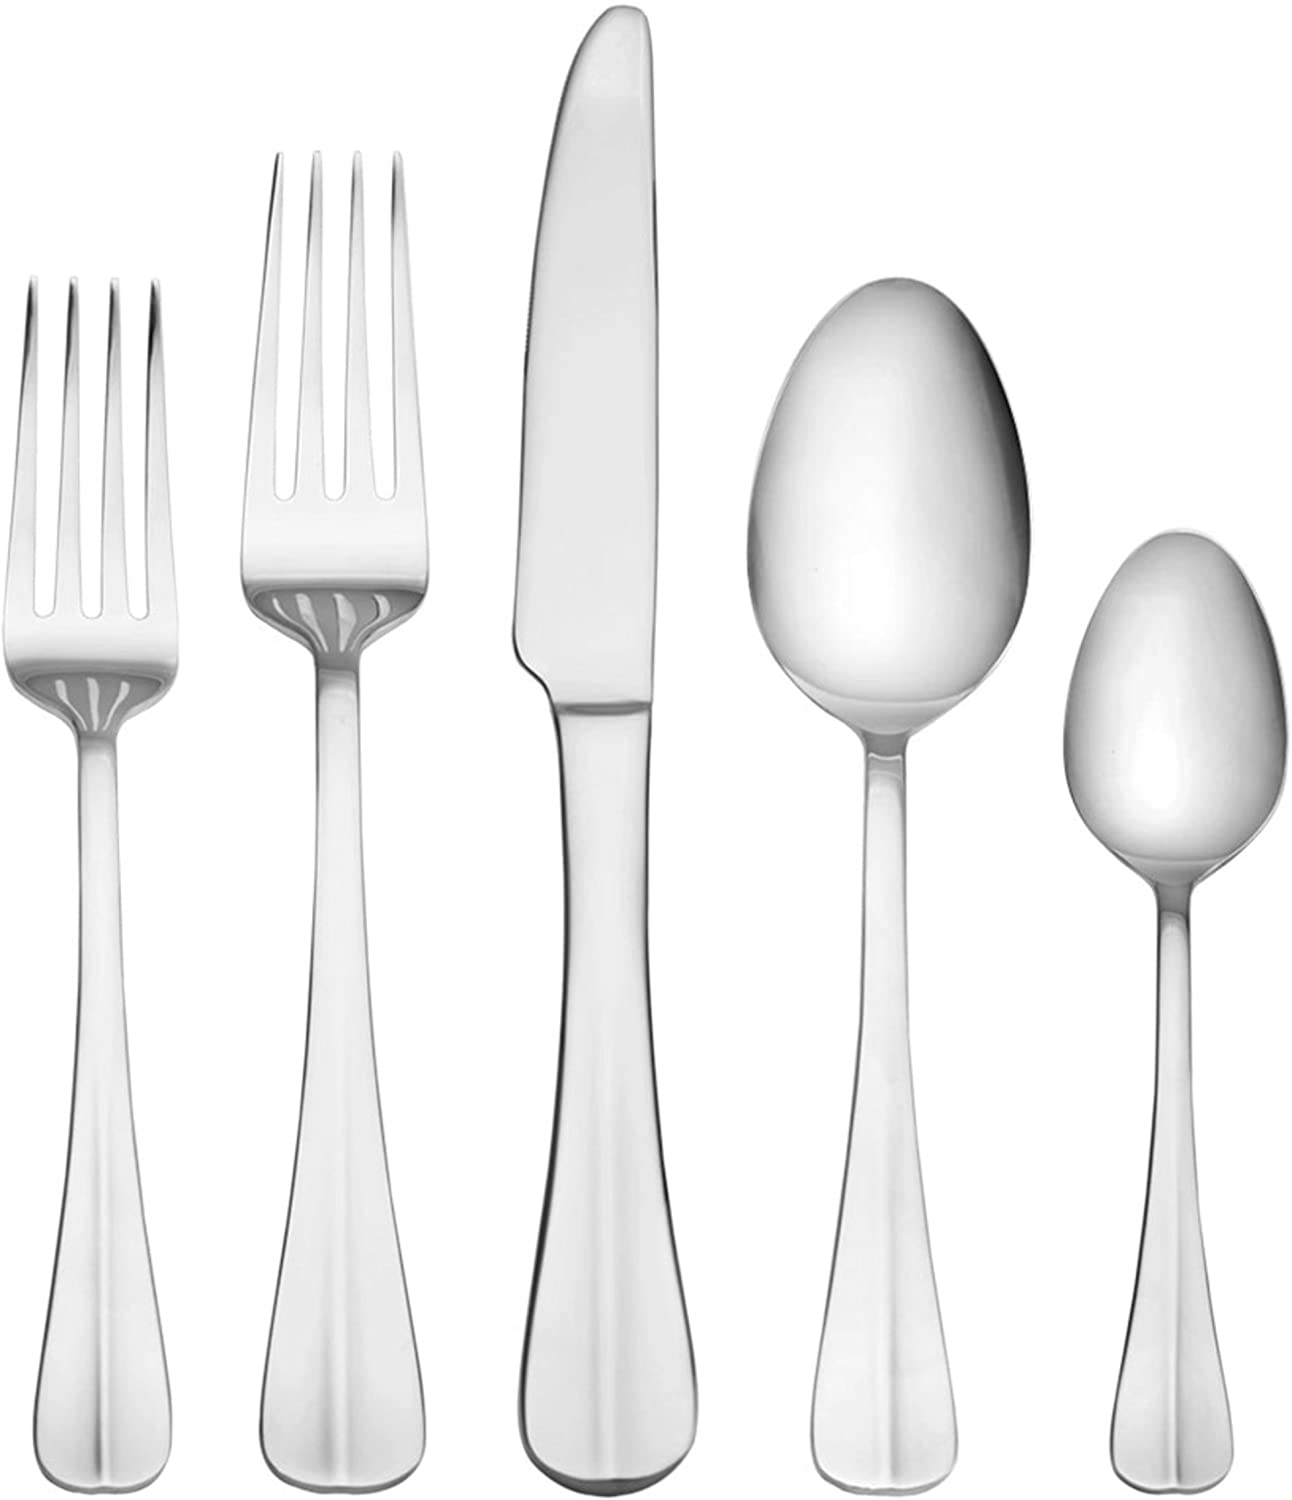 International Silver Simplicity 53-Piece Stainless Steel Flatware Set with Serving Utensil Set, Service for 8